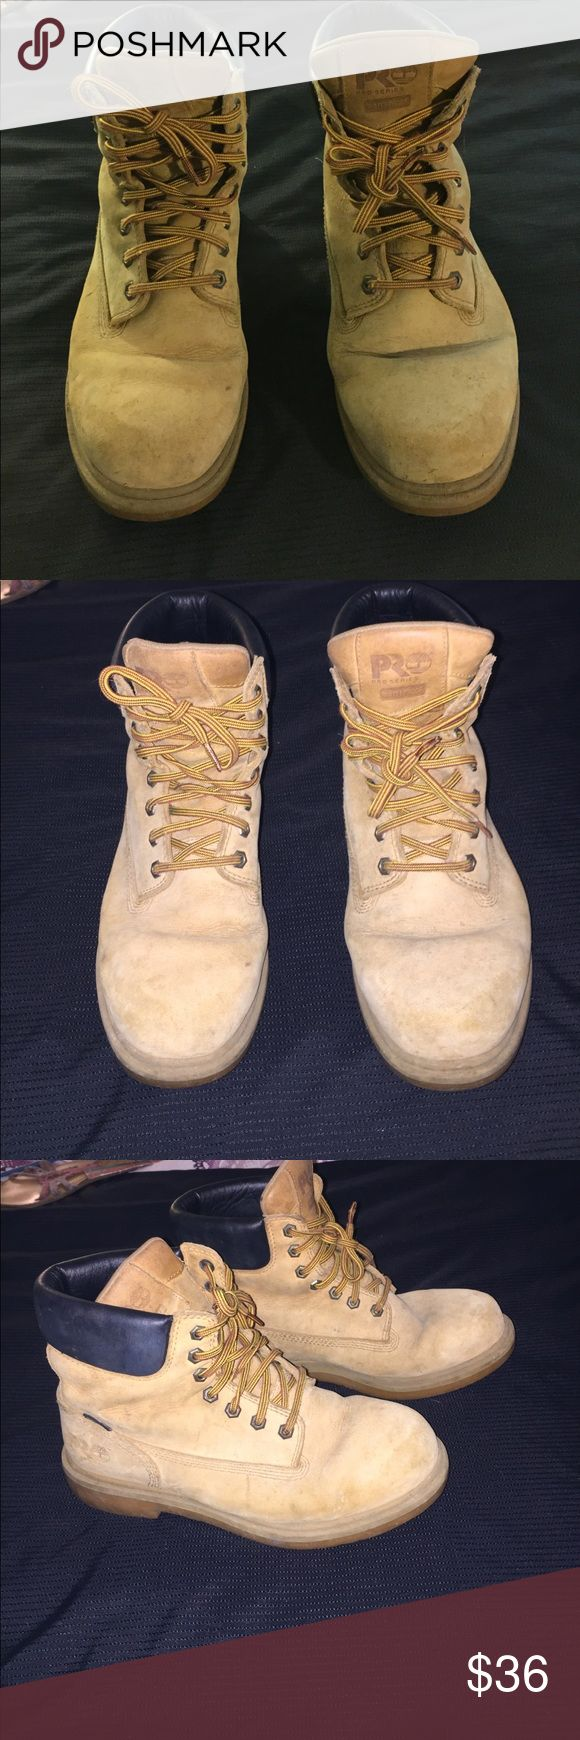 TIMBERLAND Waterproof boots Good condition. Minor sign of wear. Very comfortable high quality boots! Timberland Shoes Boots